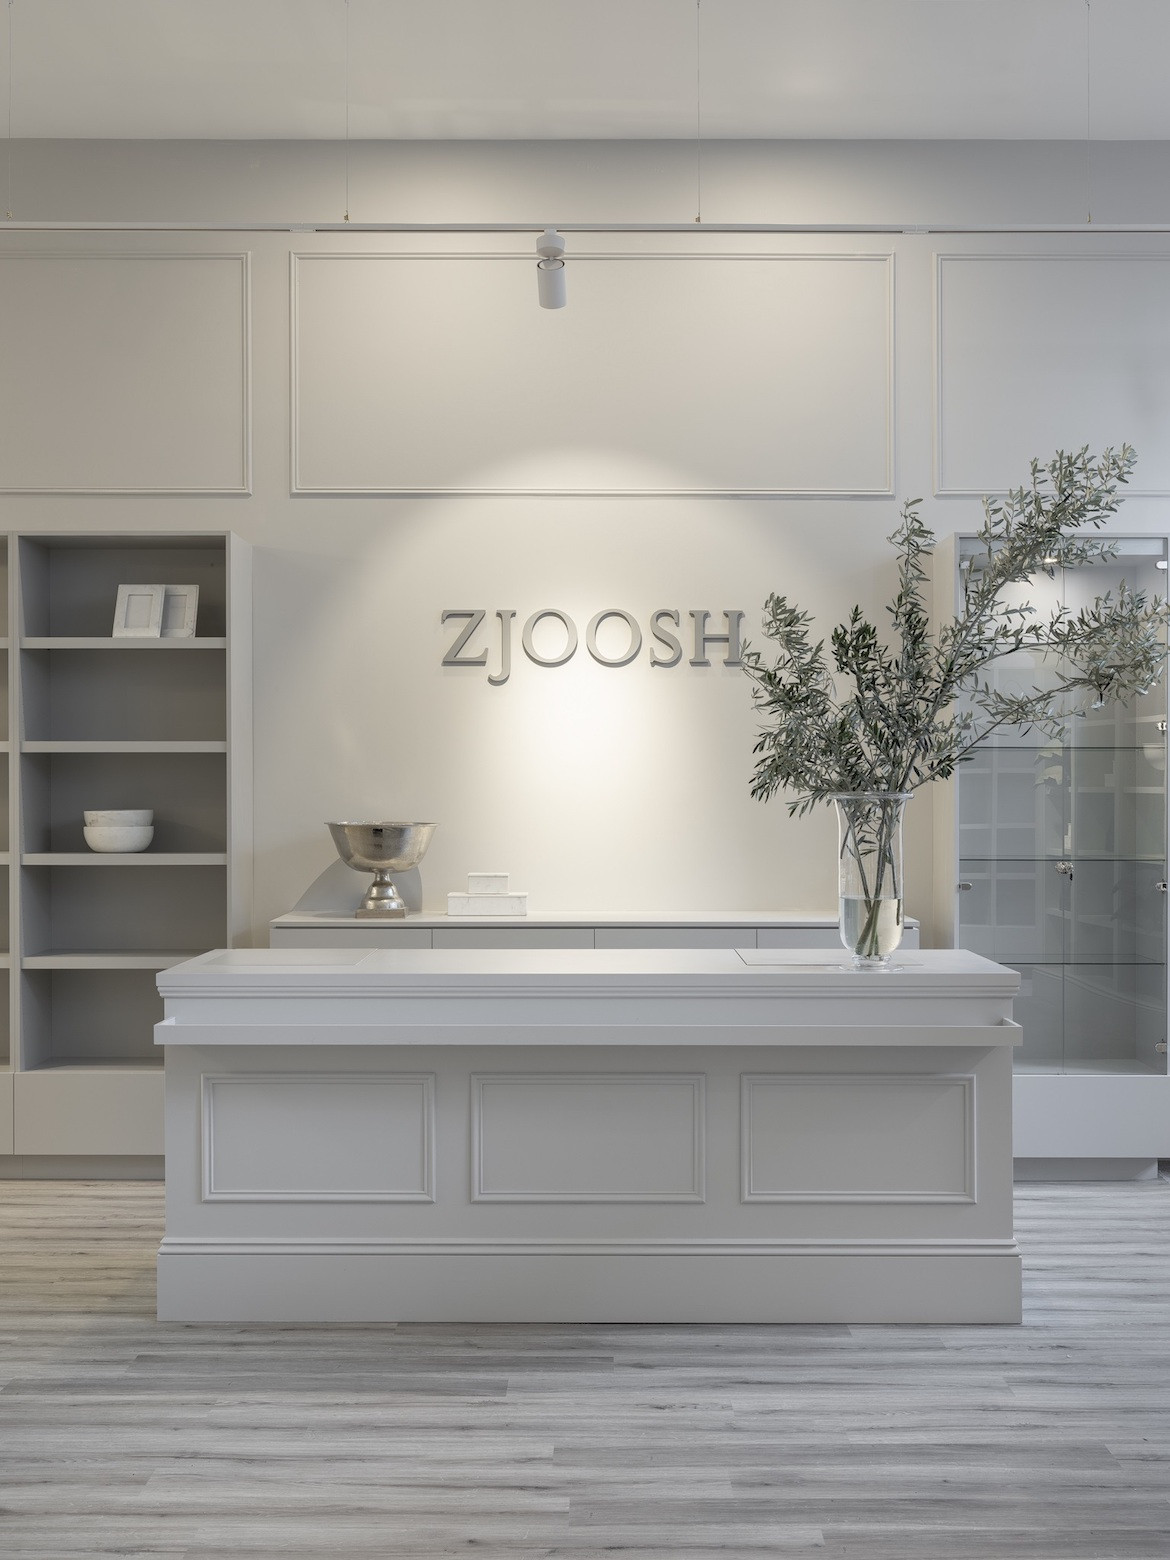 A counter with a white top in front of Dior-grey walls that have the Zjoosh logo.